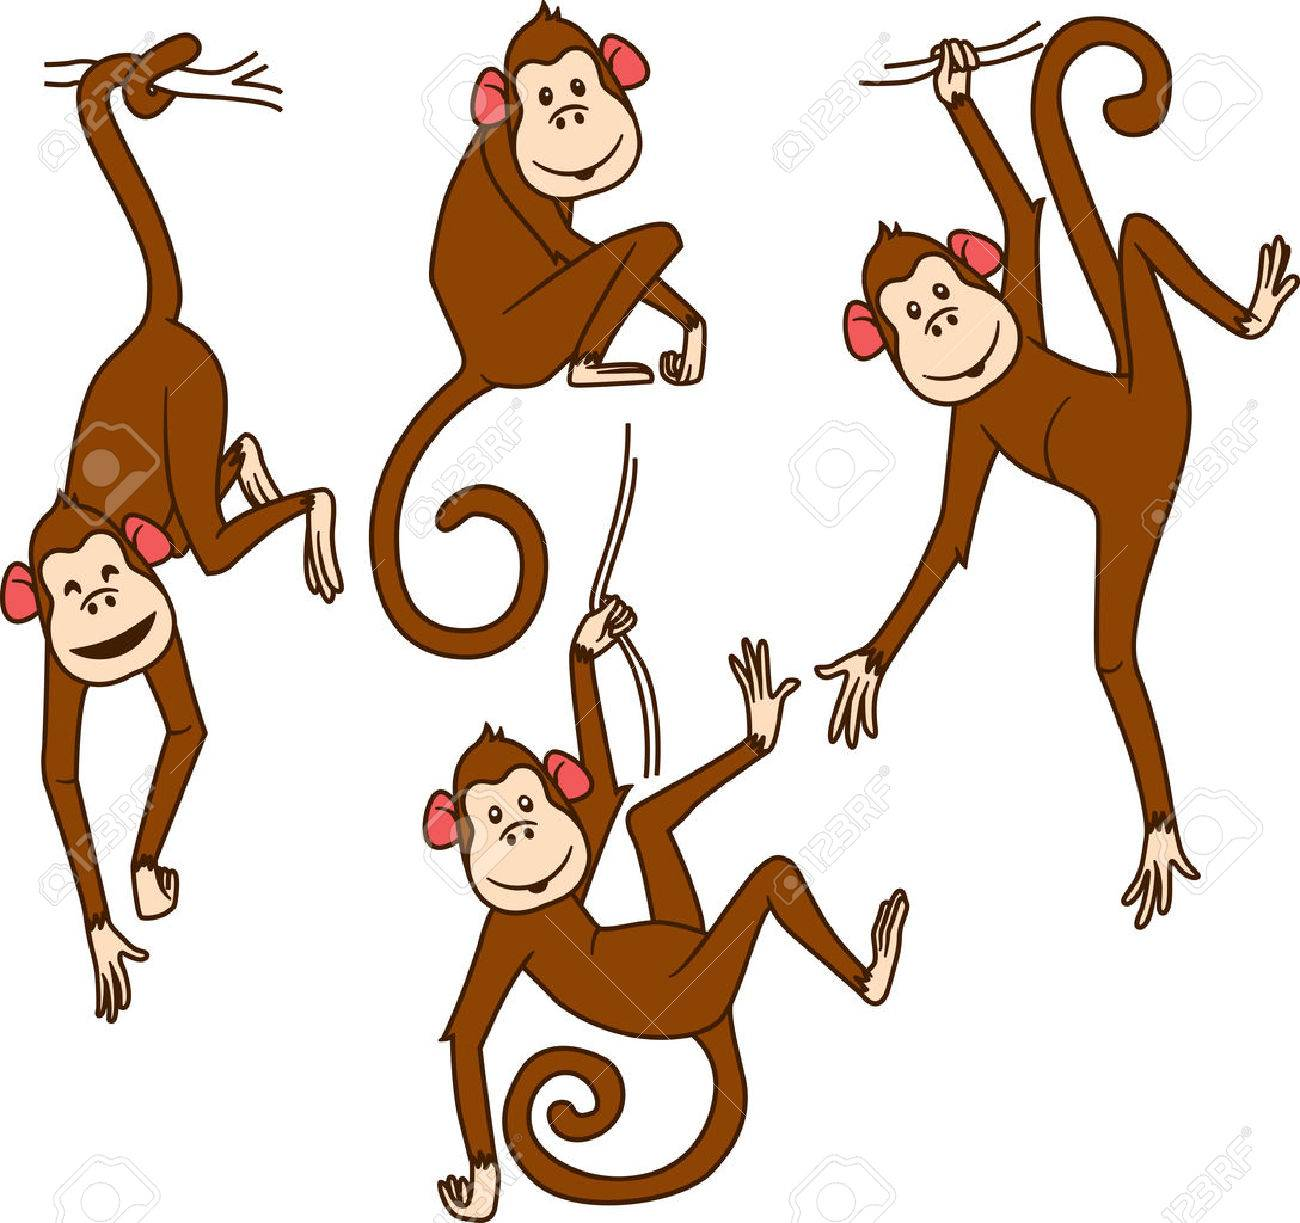 468 different monkeys stock vector illustration and royalty free